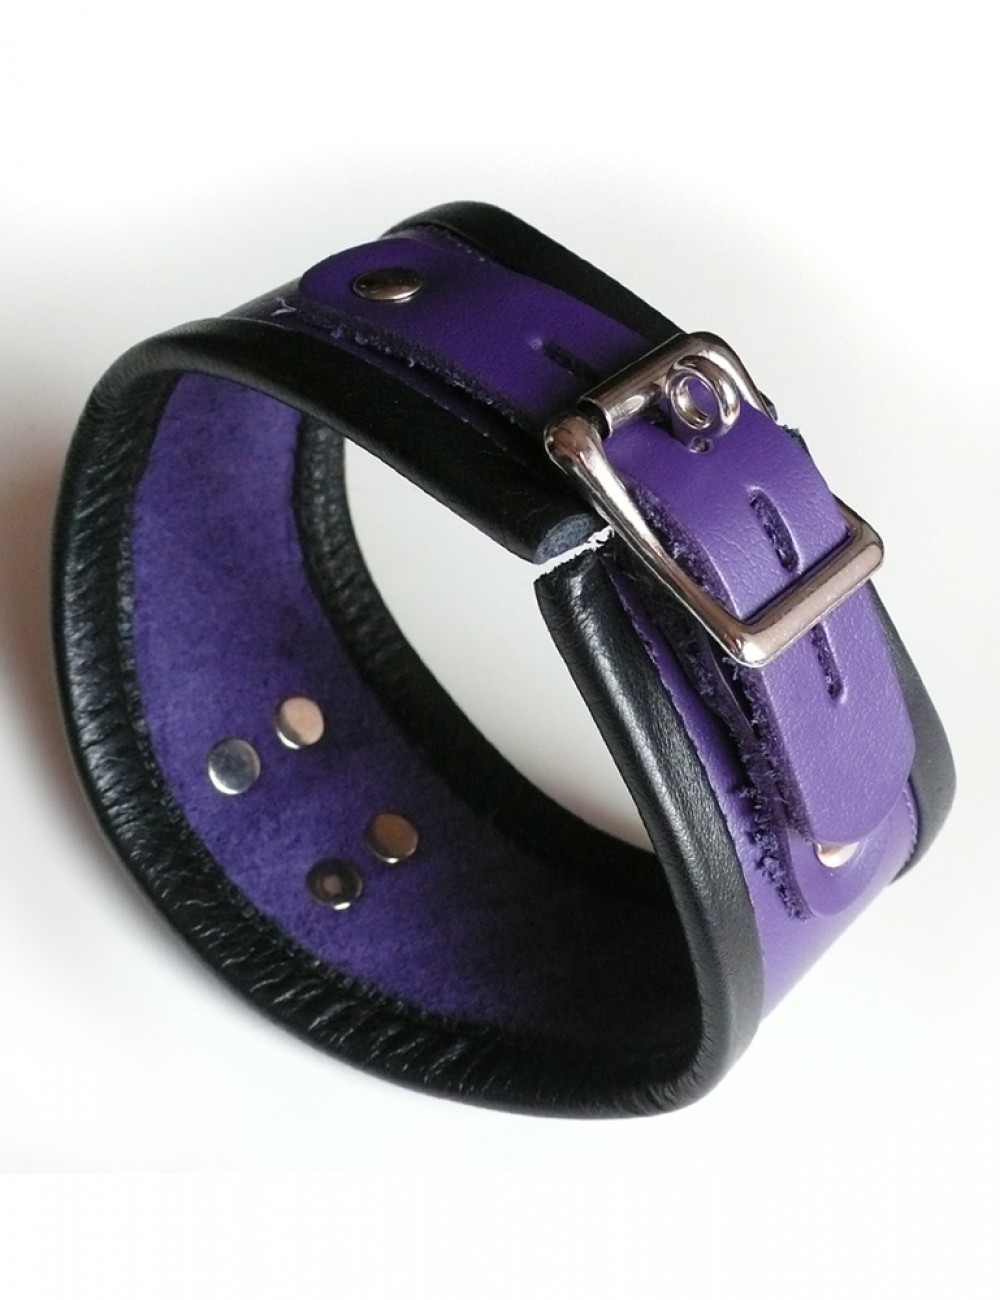 Short Locking Curved Posture Collar in Purple Leather with B